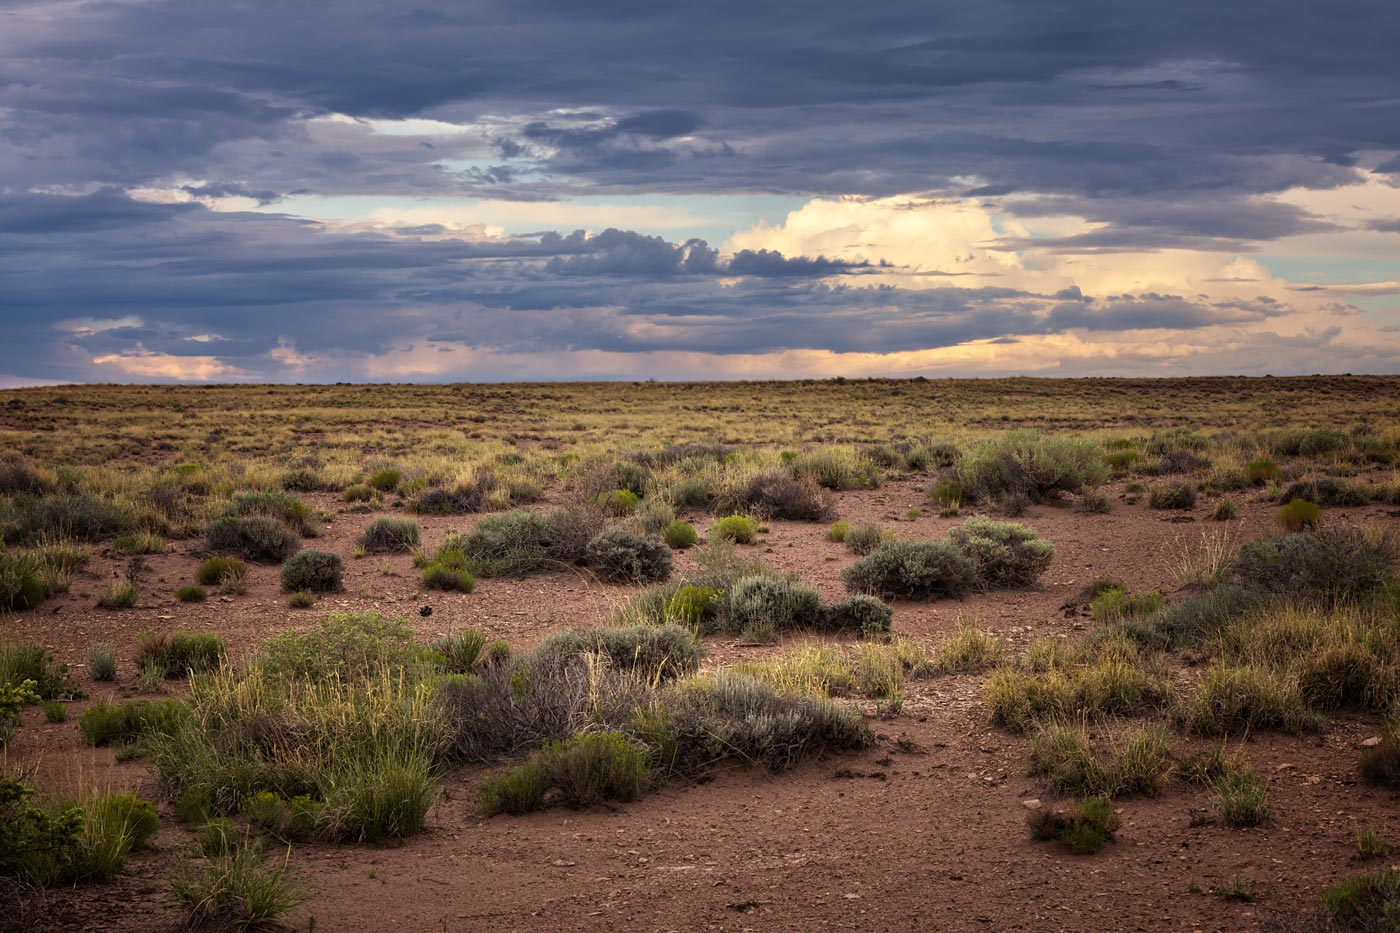 Petrified-Forest-National-Park-ABP-Grassland.jpg